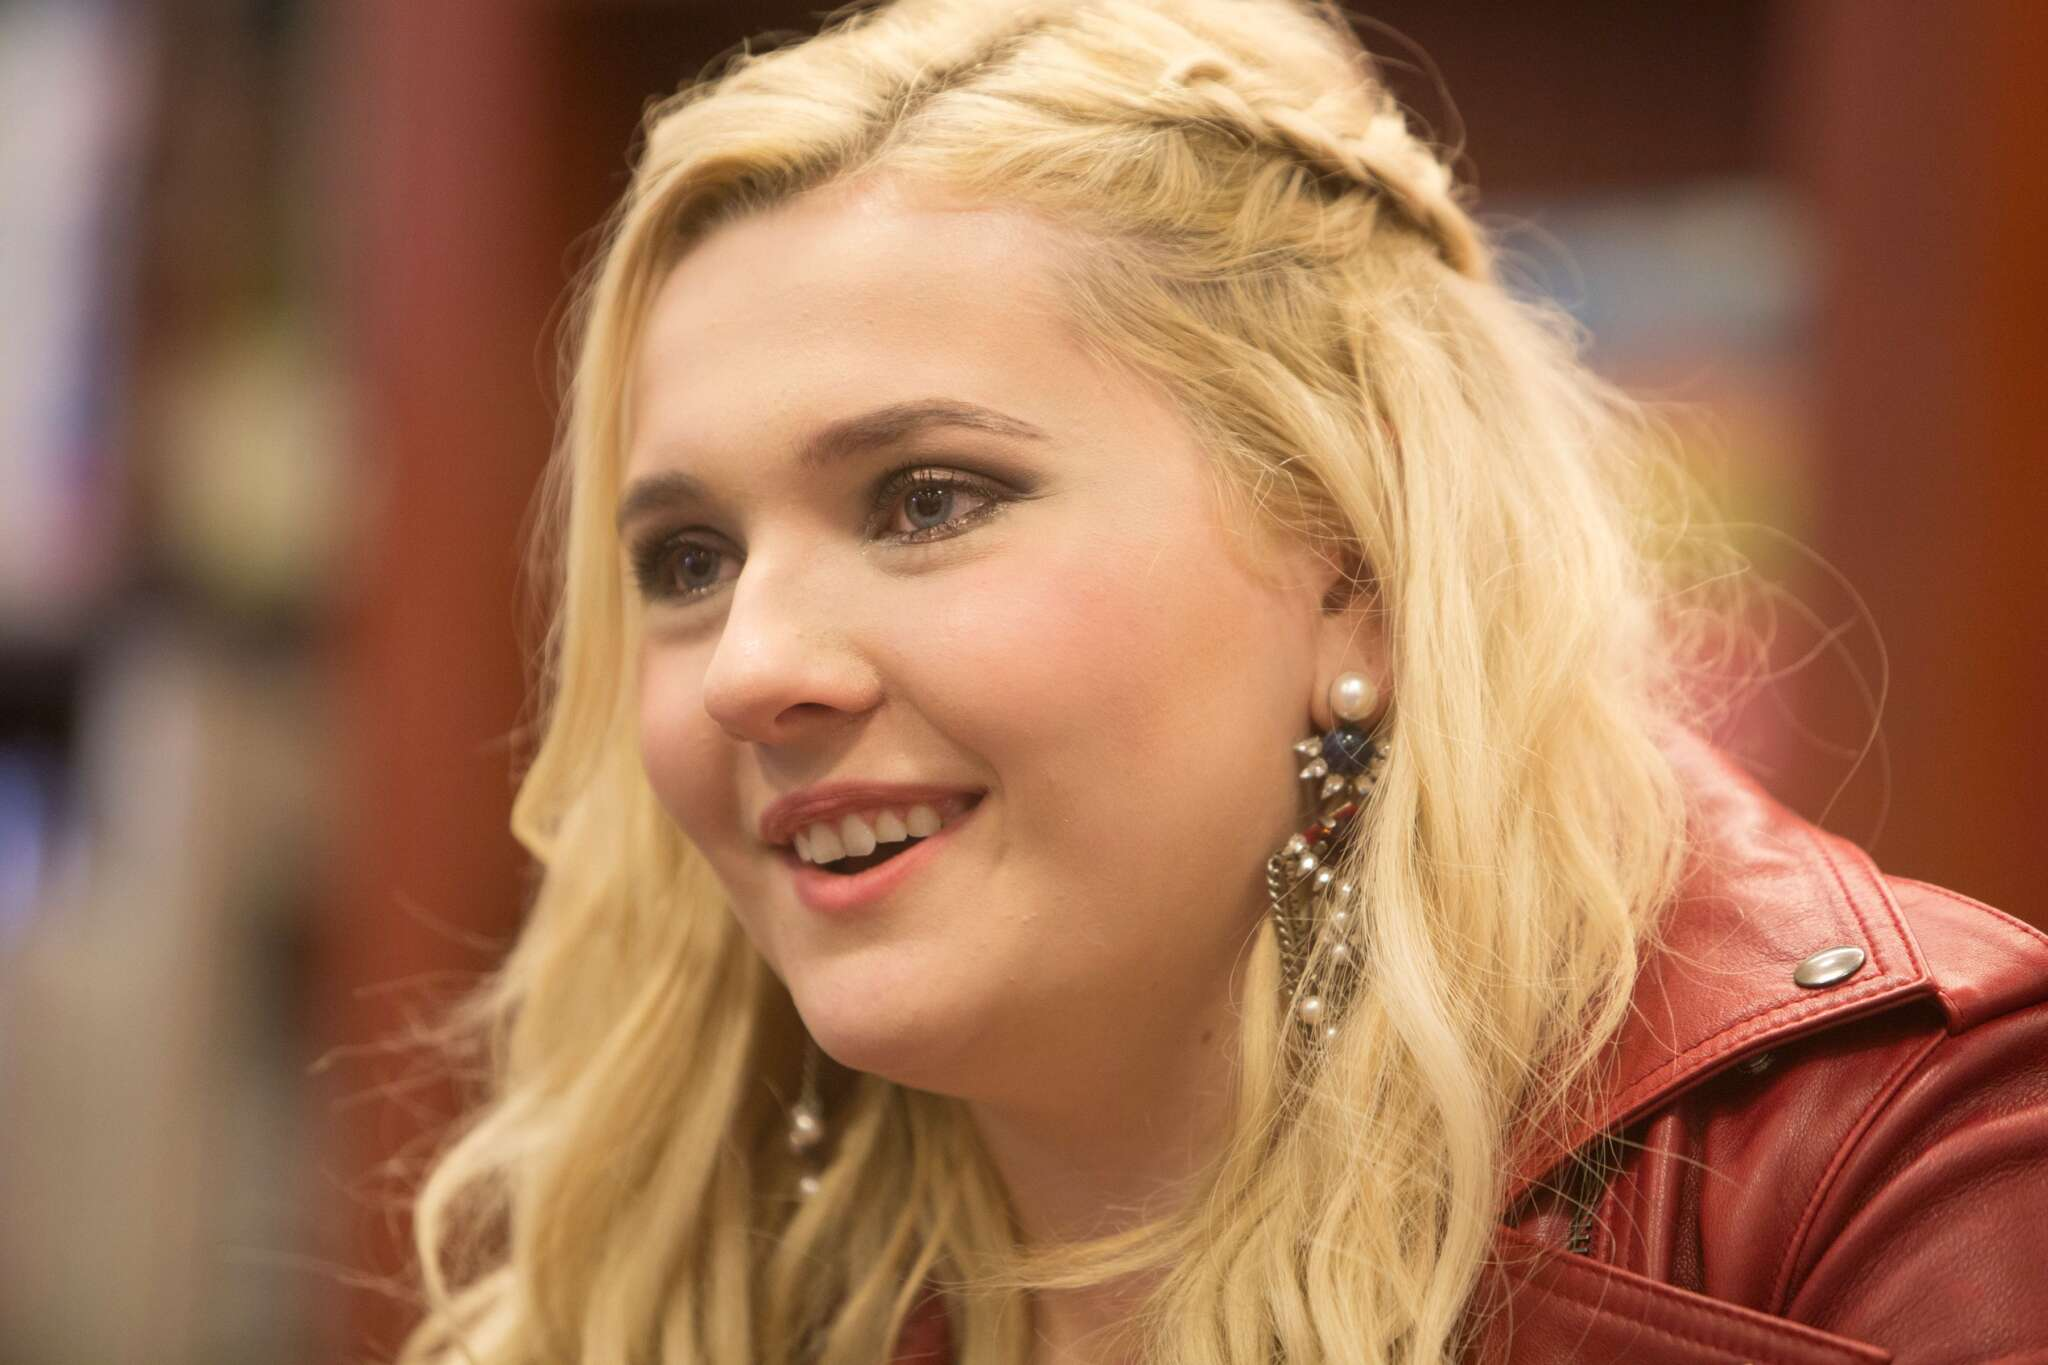 Abigail Breslin Claps Back At 'Disgusting' COVID-19 Comment While Her Father Is Struggling To Survive!